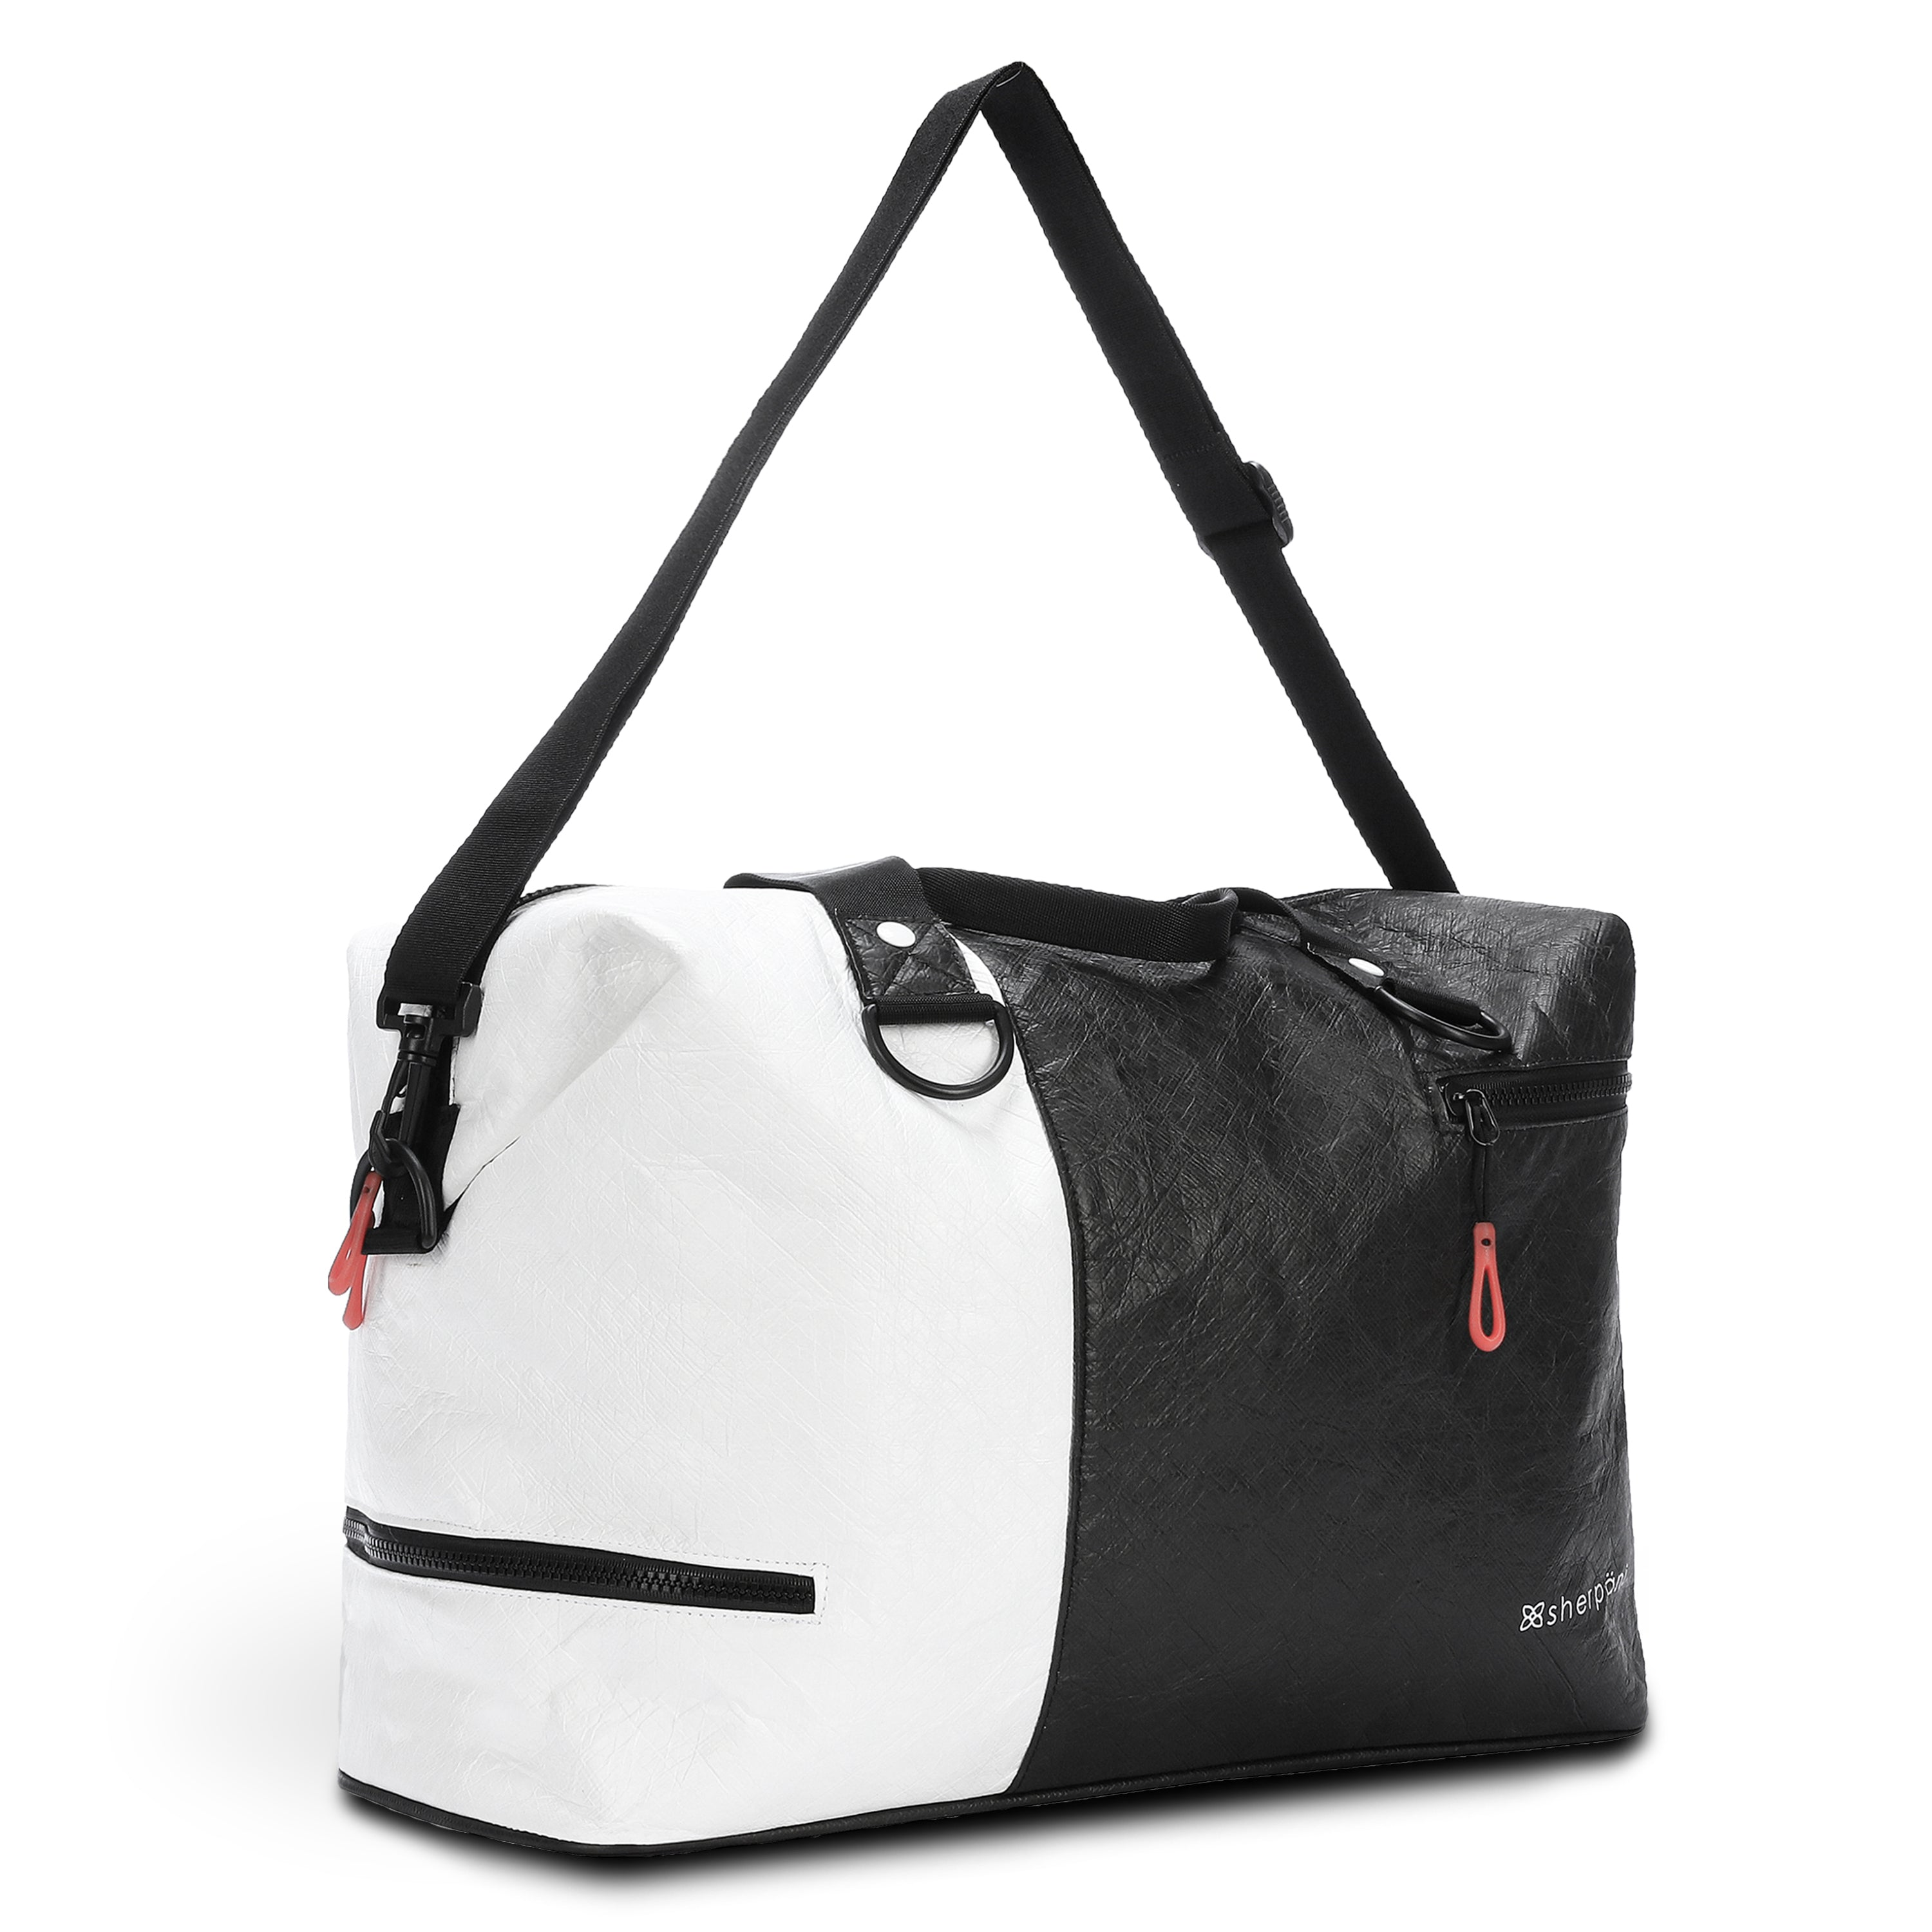 Black & White Duffle bag and Gym bag (3/4 Side) made with tyvek fabric